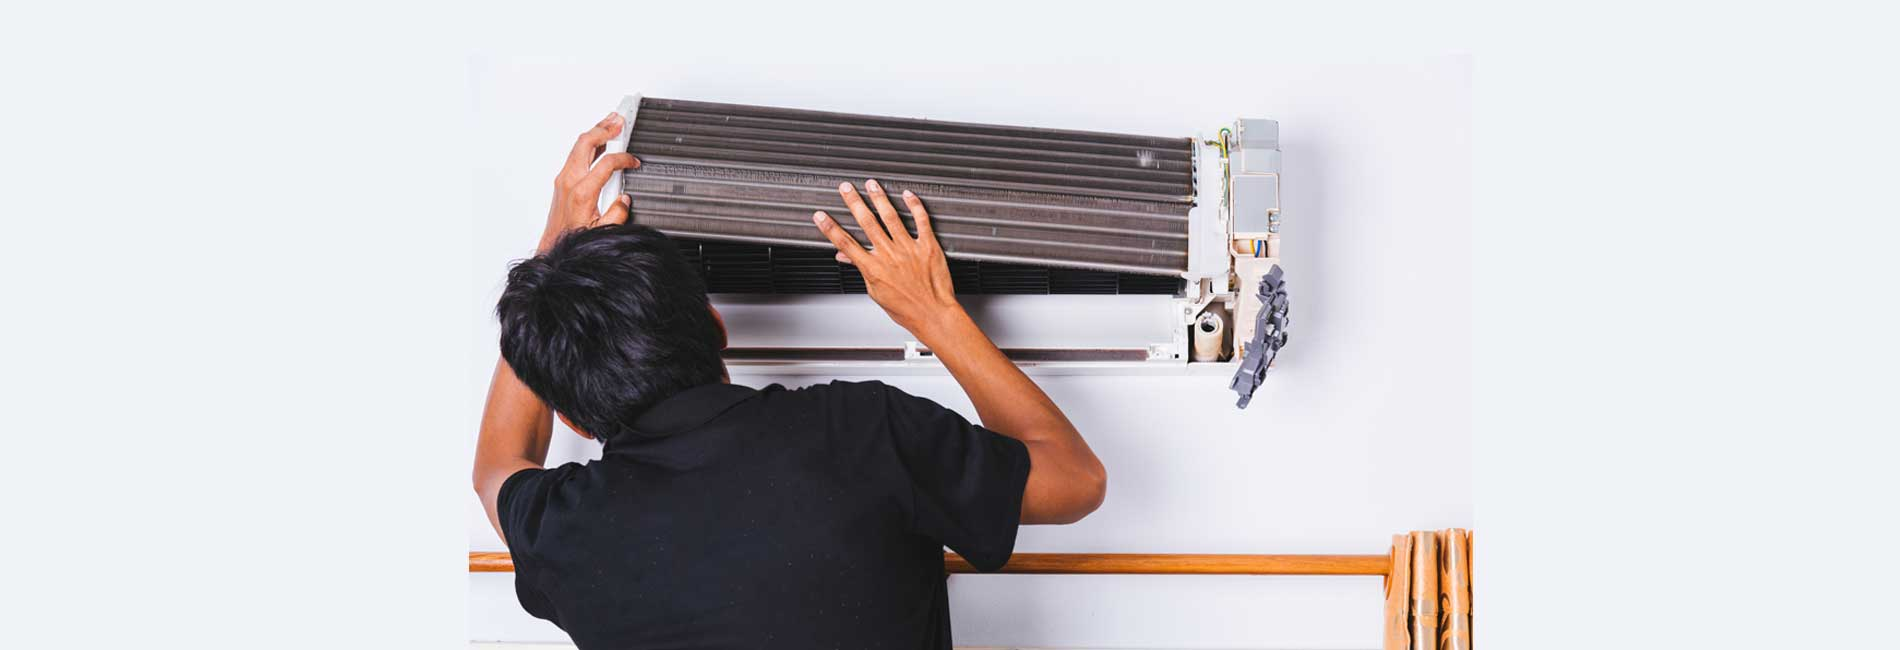 AC Installation in Chennai